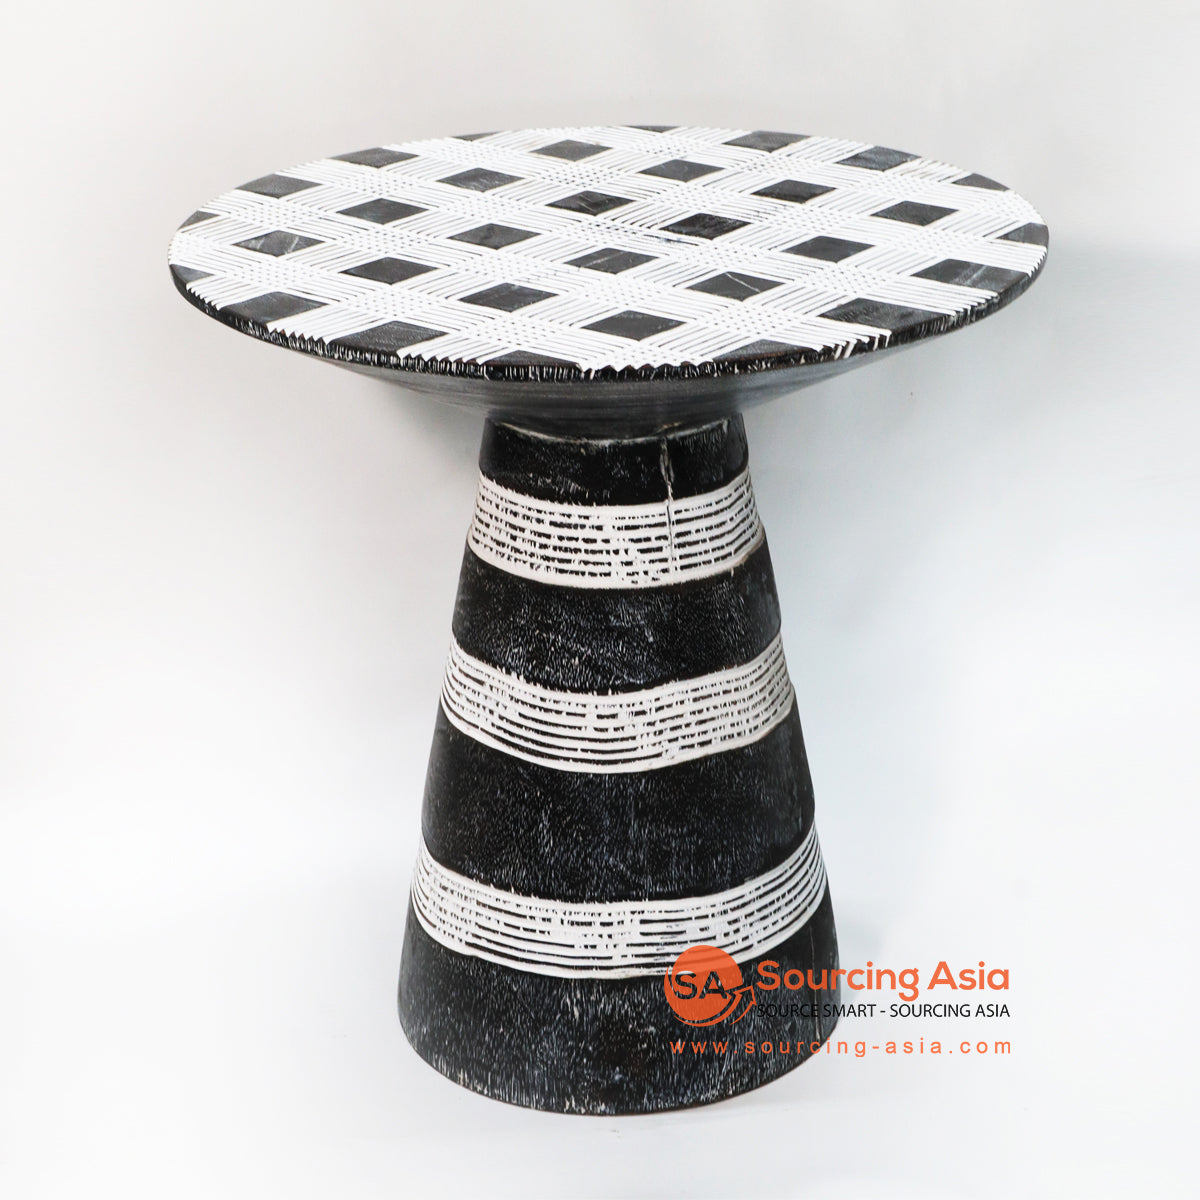 BMW220-2 CARVED TRIBAL ETHNIC STYLE SIDE TABLE